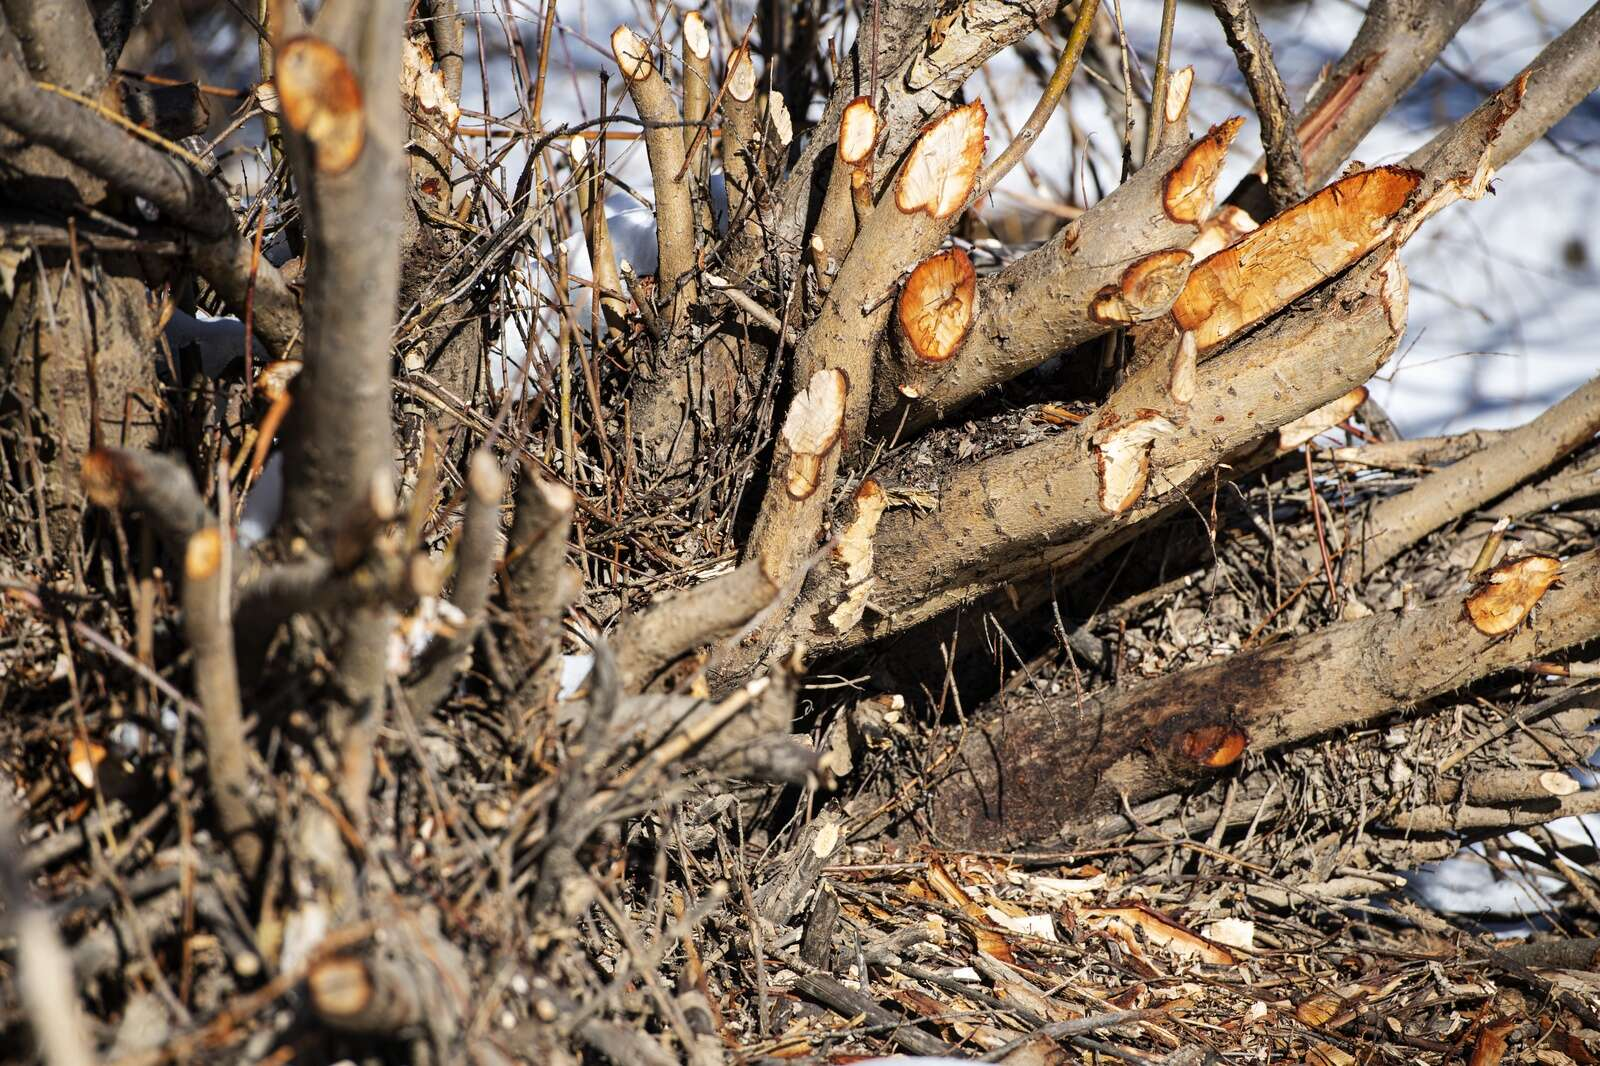 Beaver activity can be seen throughout Northstar Nature Preserve where the mammals have eaten the bark and chewed down branches.